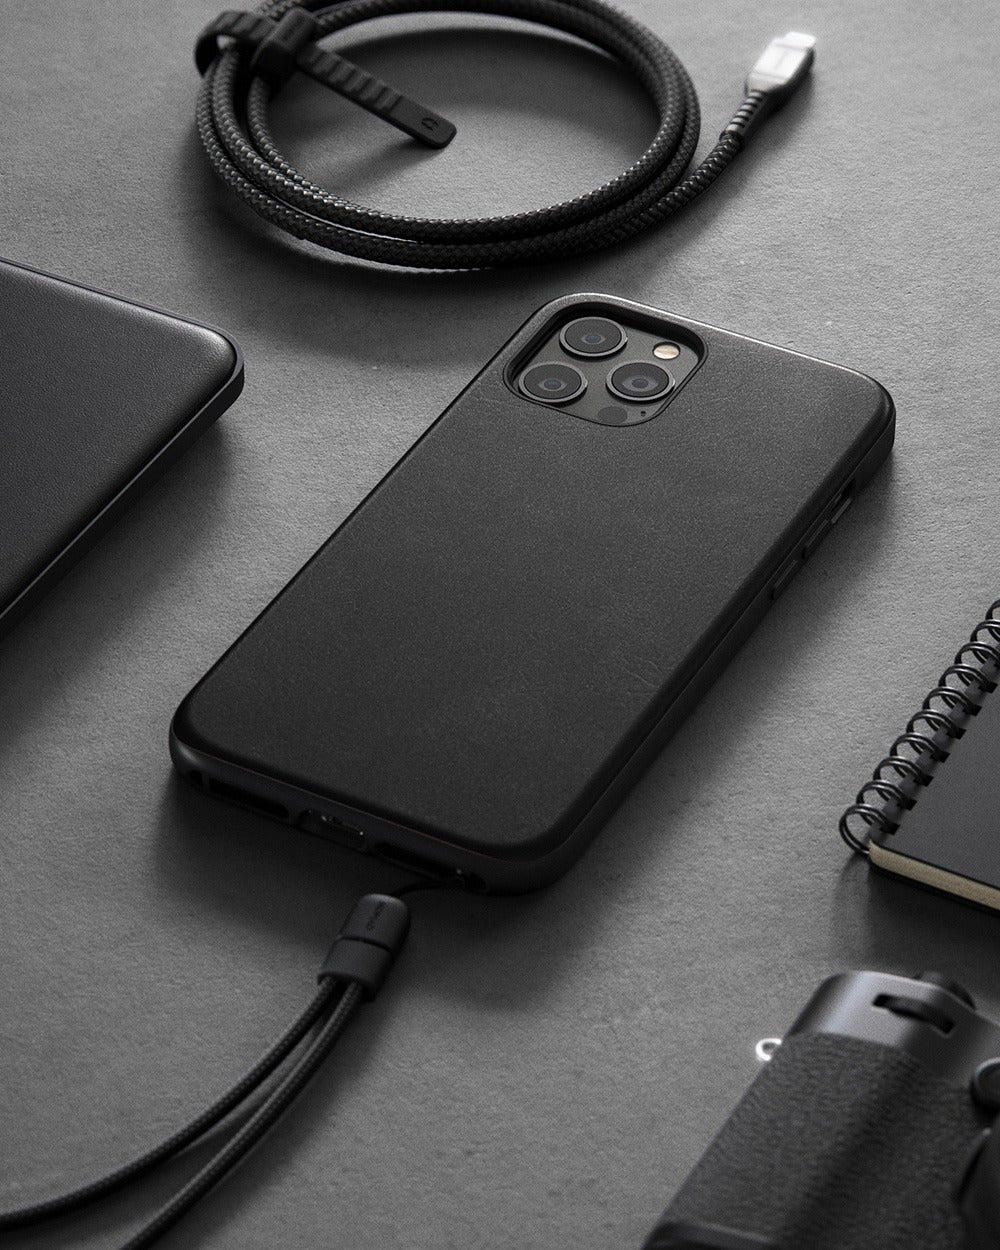 https://cdn.shopify.com/s/files/1/0384/6721/files/iPhone_12_Series_-_Rugged_Case_-_Lifestyle_05_-_Black_Leather_-_MOBILE_7f66c053-031c-4ba1-a794-9c627d42803f.jpg?v=1602795151